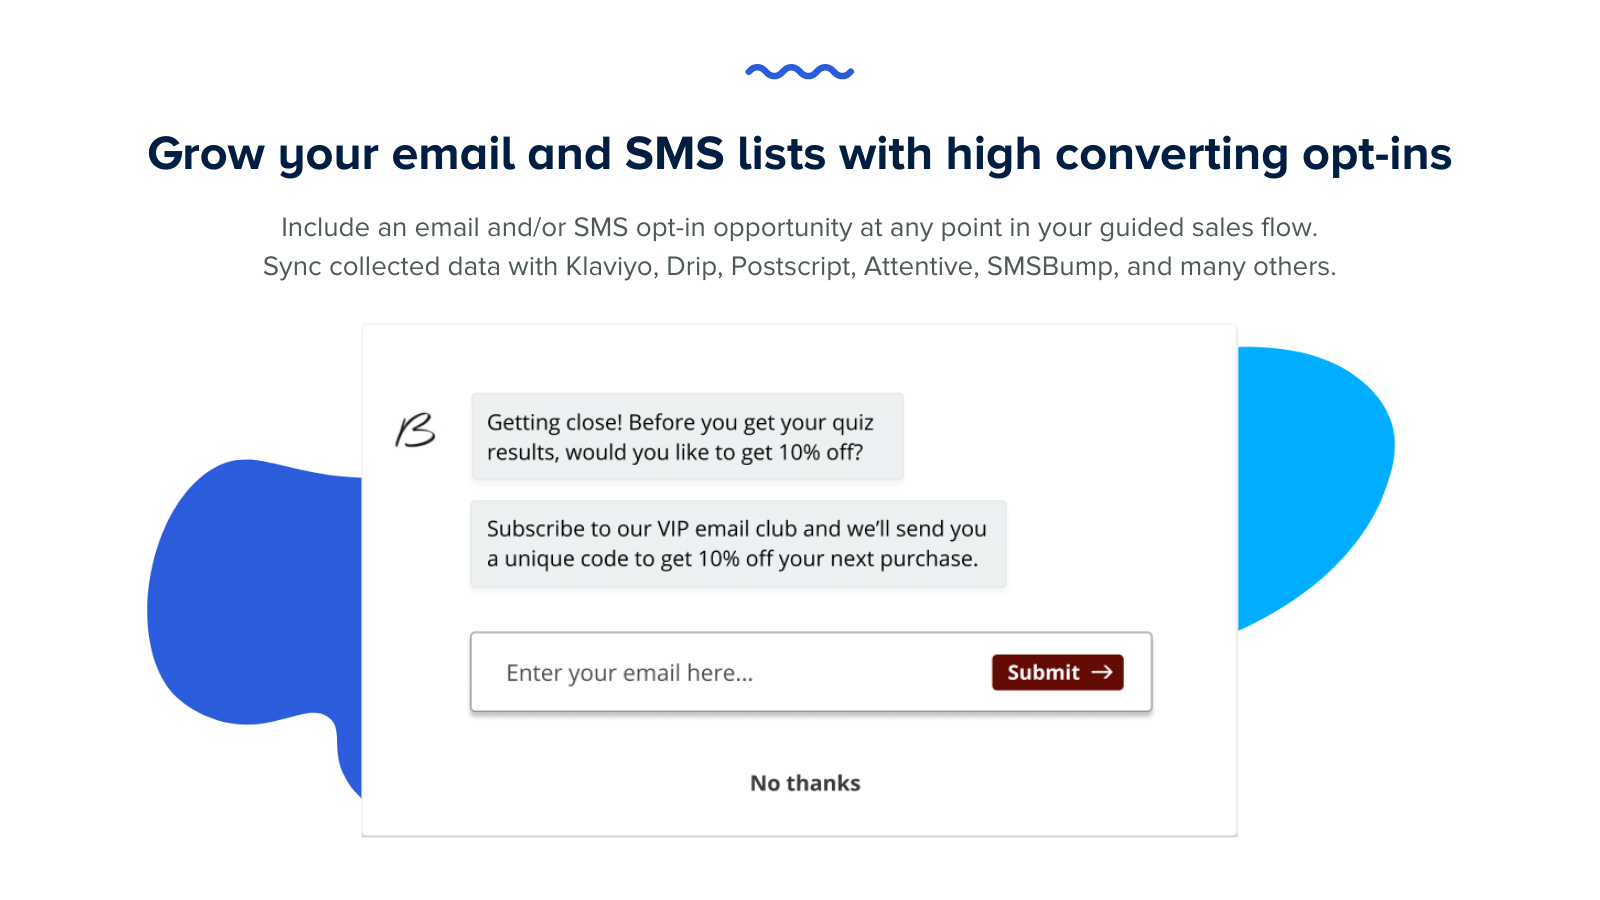 Grow your email and SMS lists with high converting opt-ins